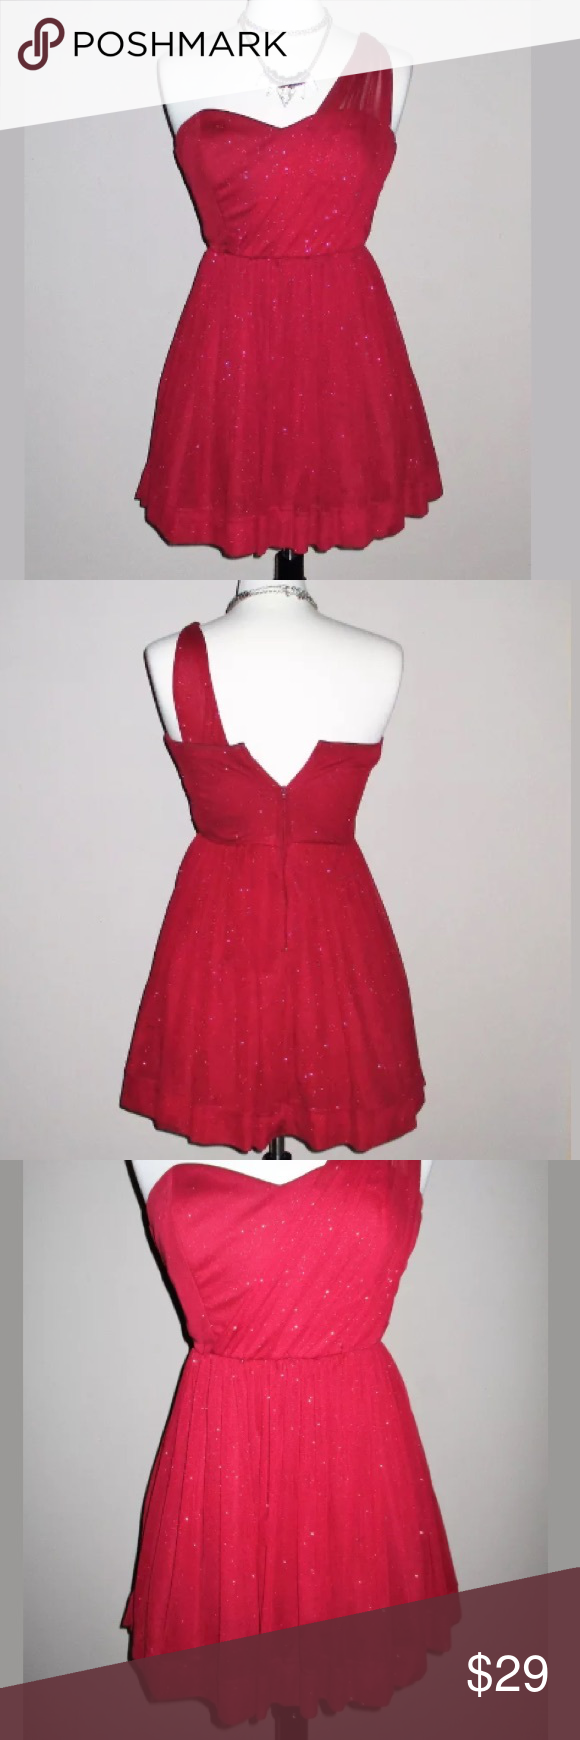 Sold teeze me red homecoming prom dress red tulle skirt